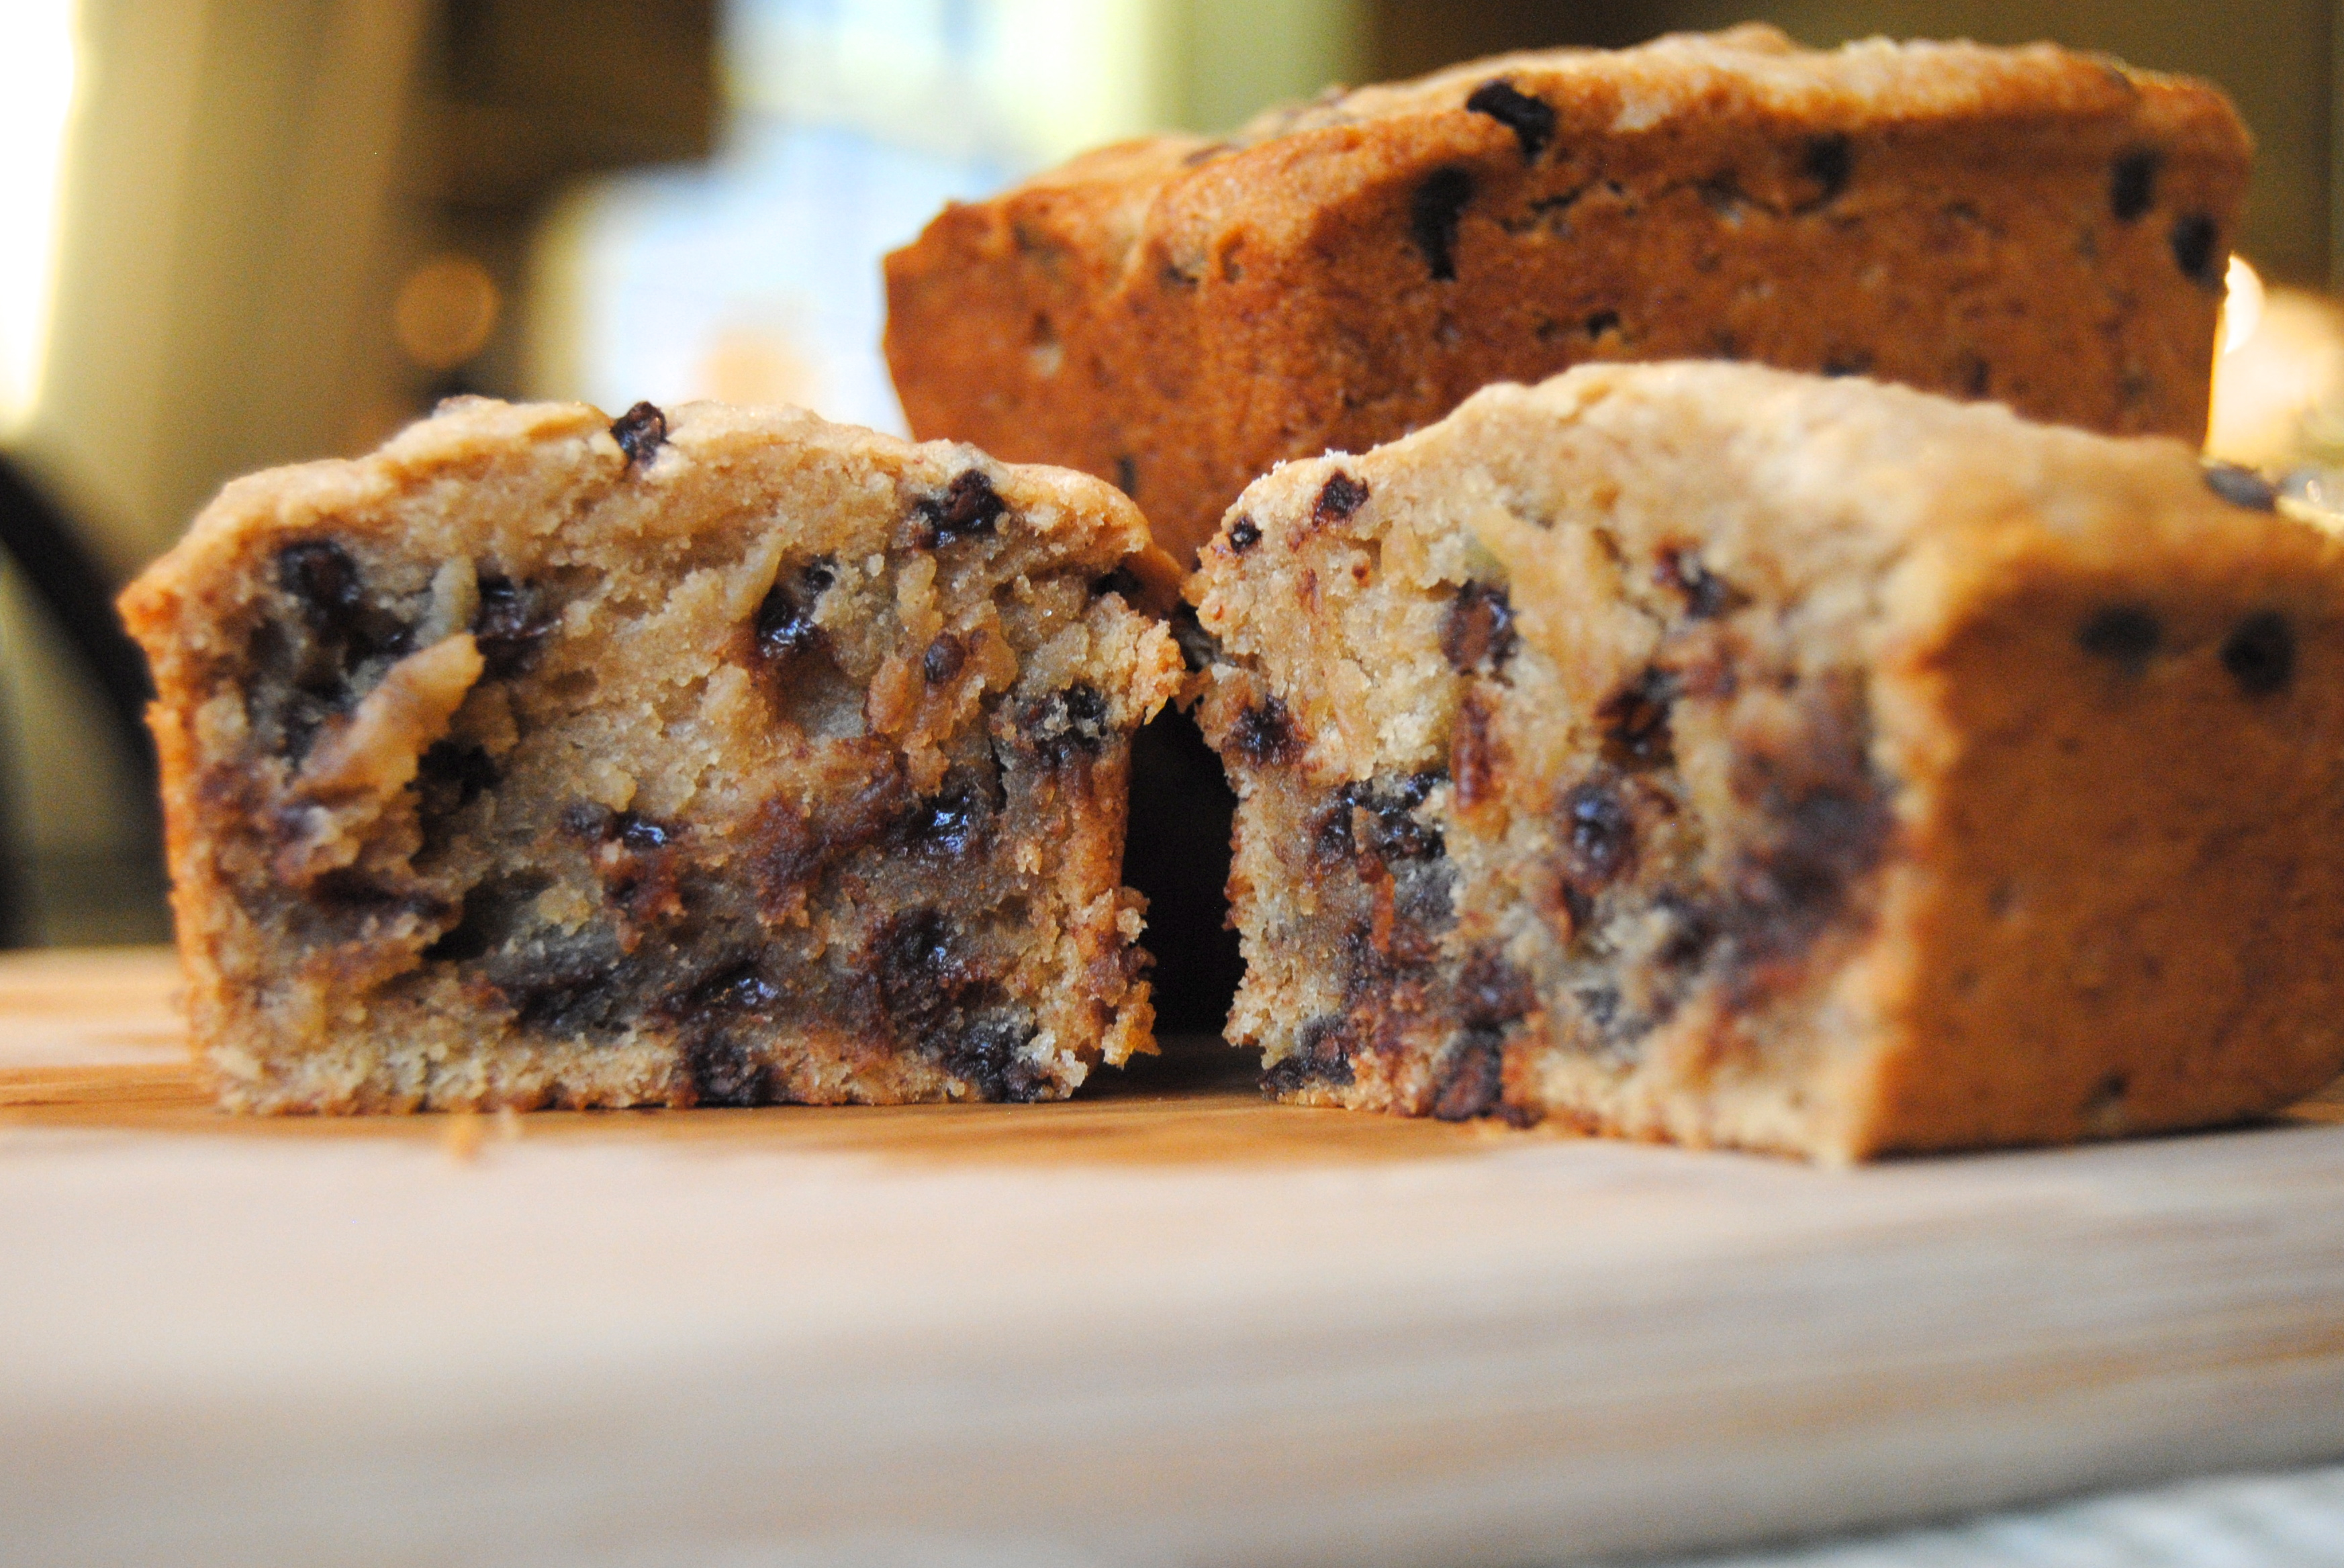 Peanut Butter Banana Bread with Chocolate Chips | Biscuits ...